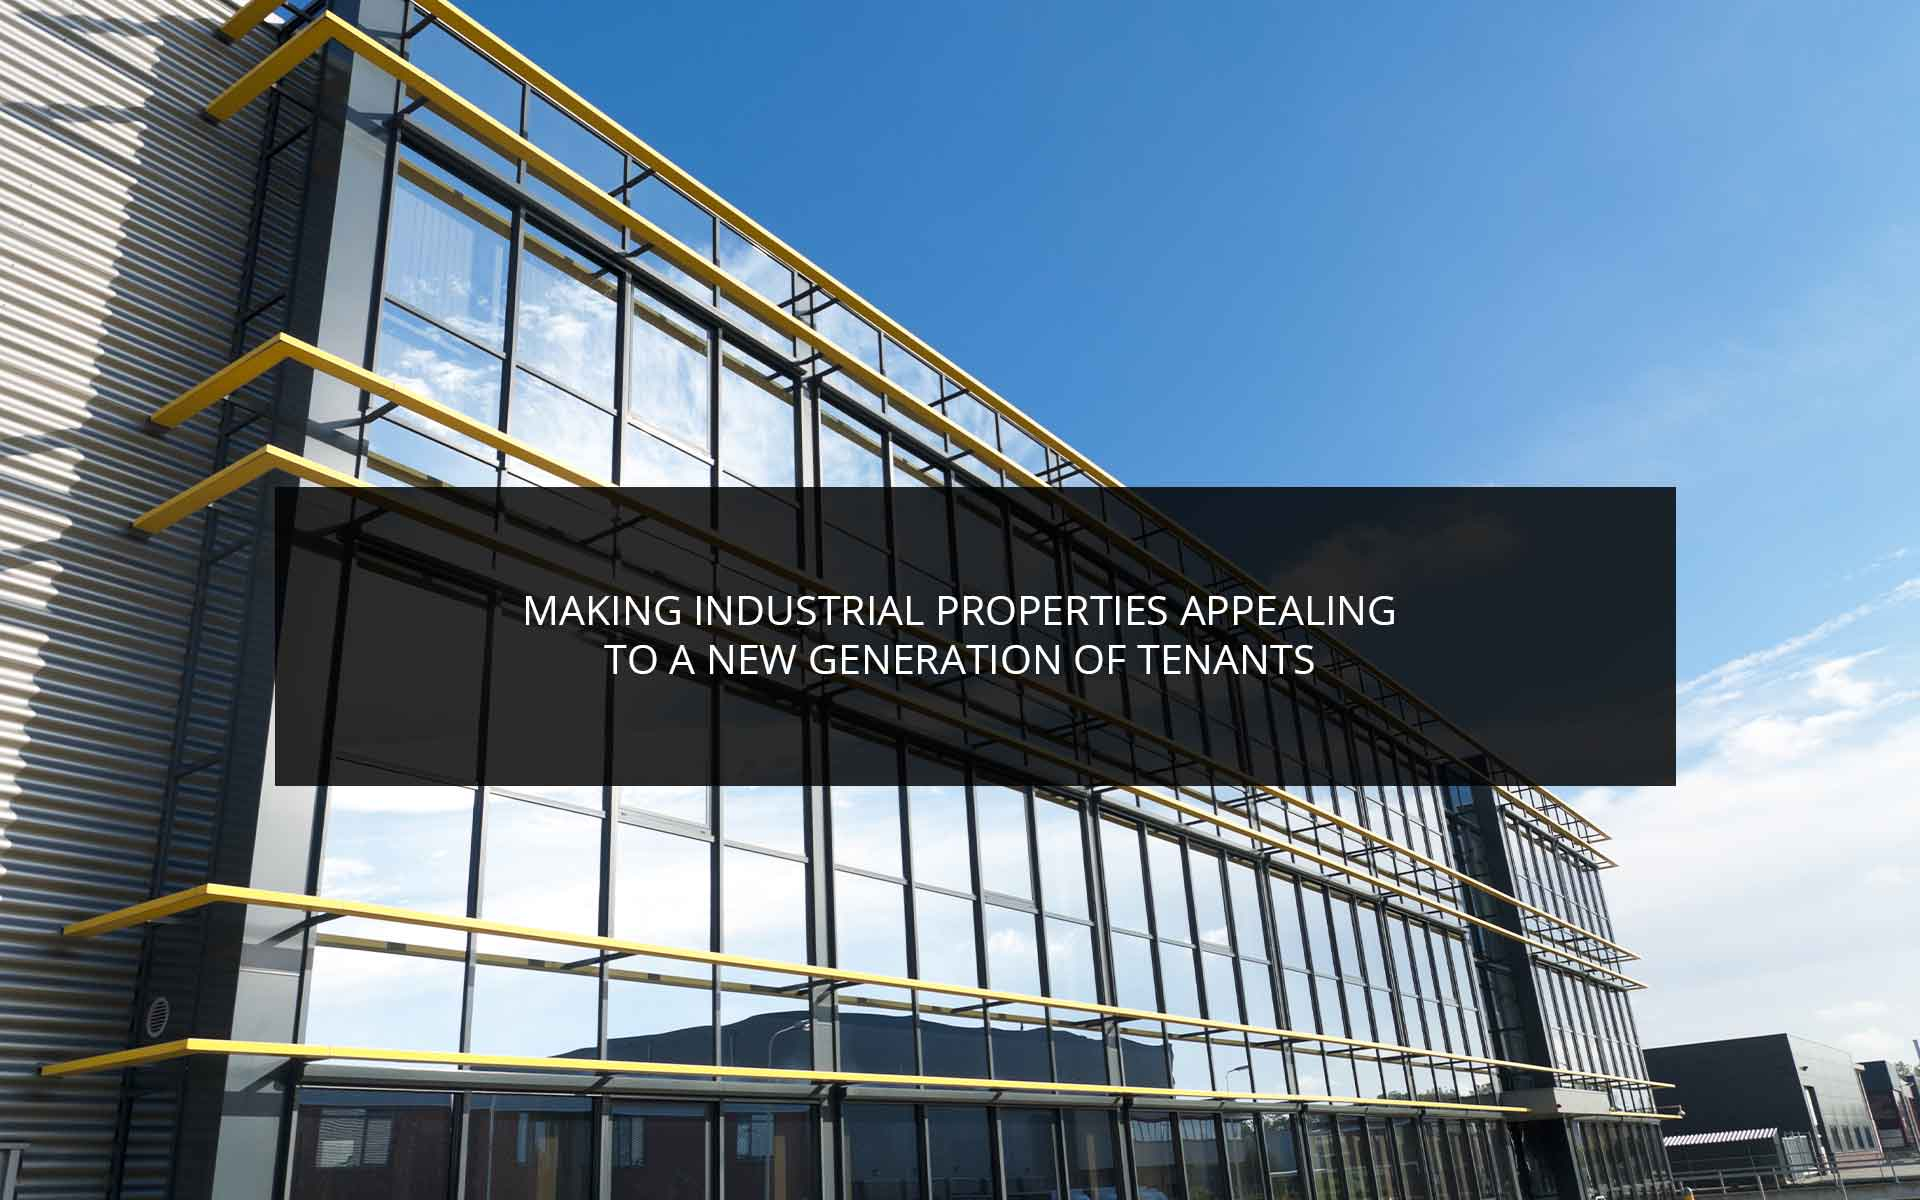 Making Industrial Properties Appealing to a New Generation of Tenants